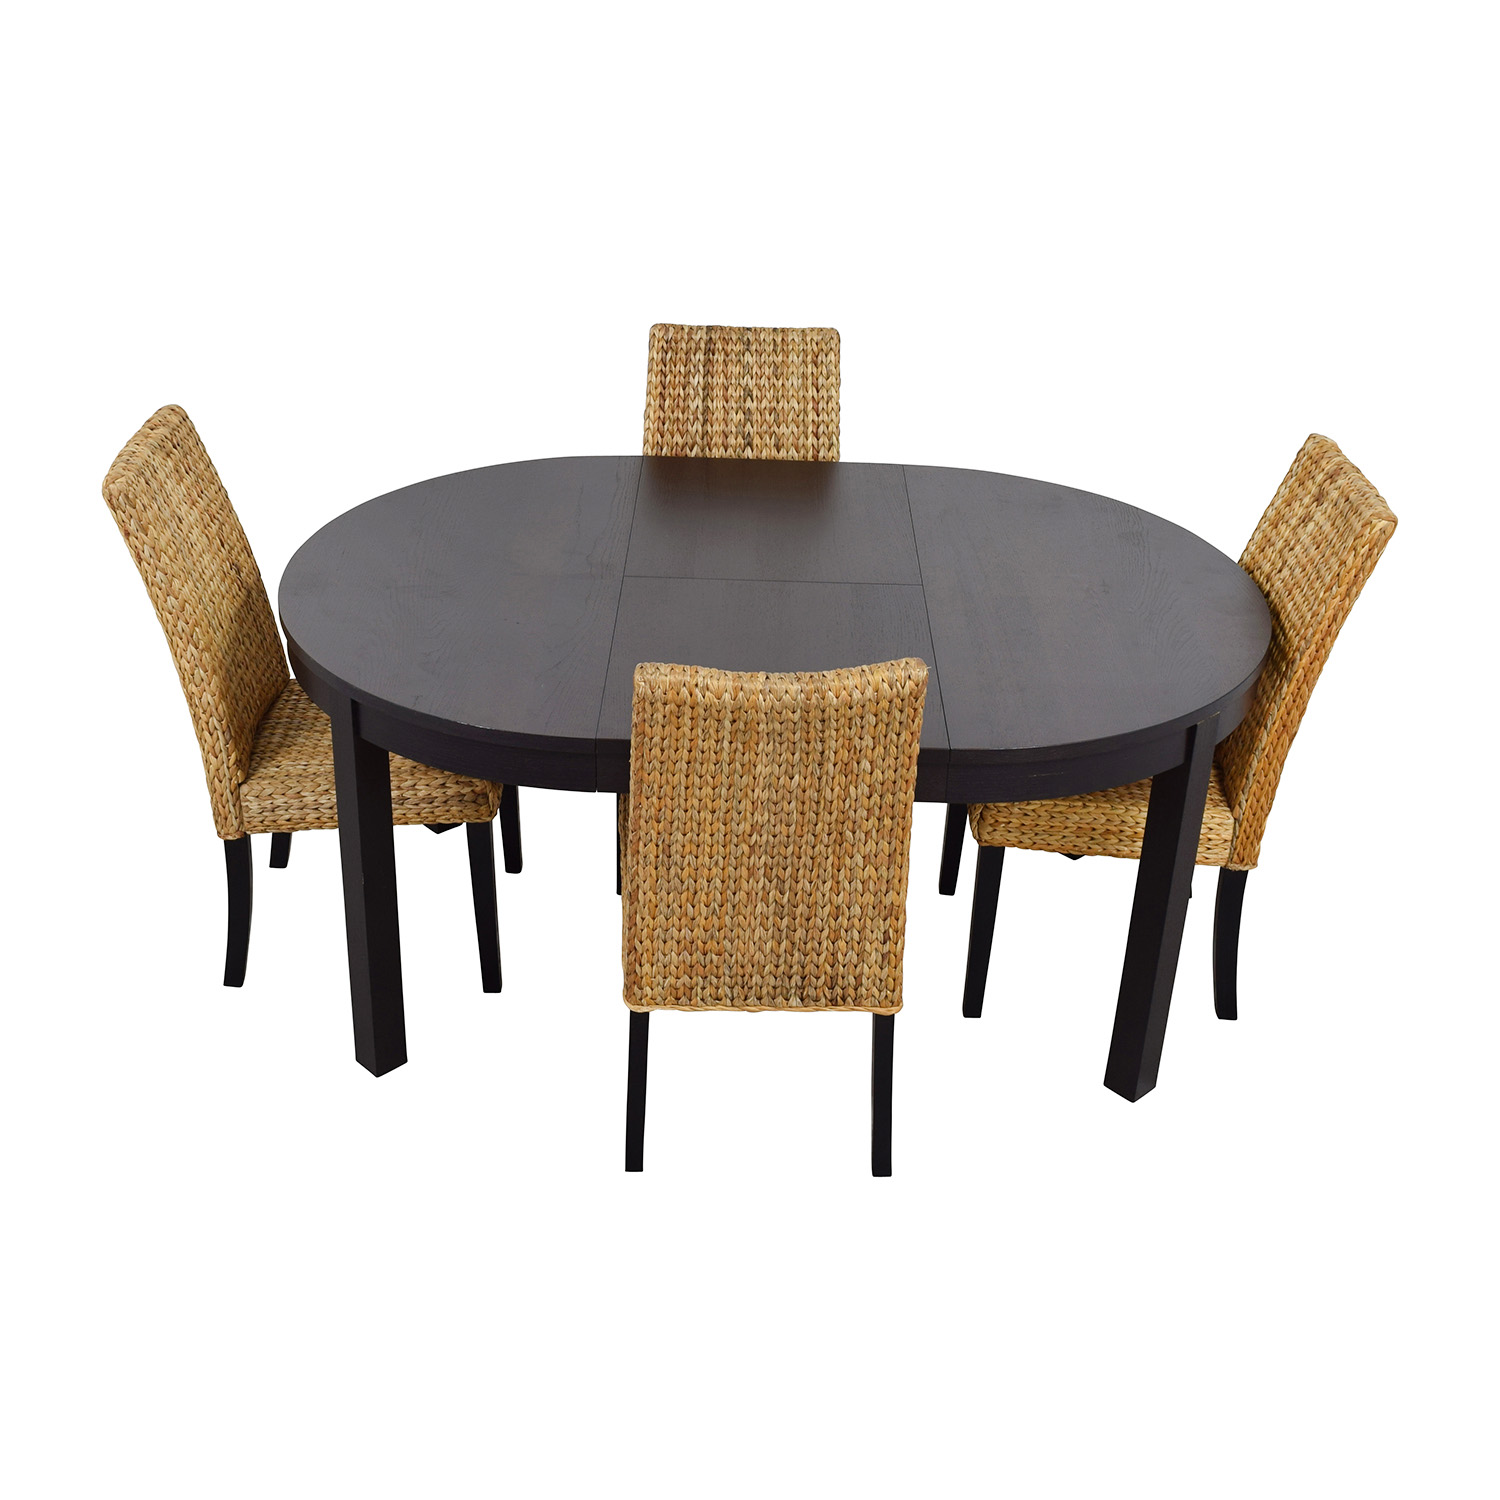 66 OFF Macys Amp IKEA Round Black Dining Table Set With